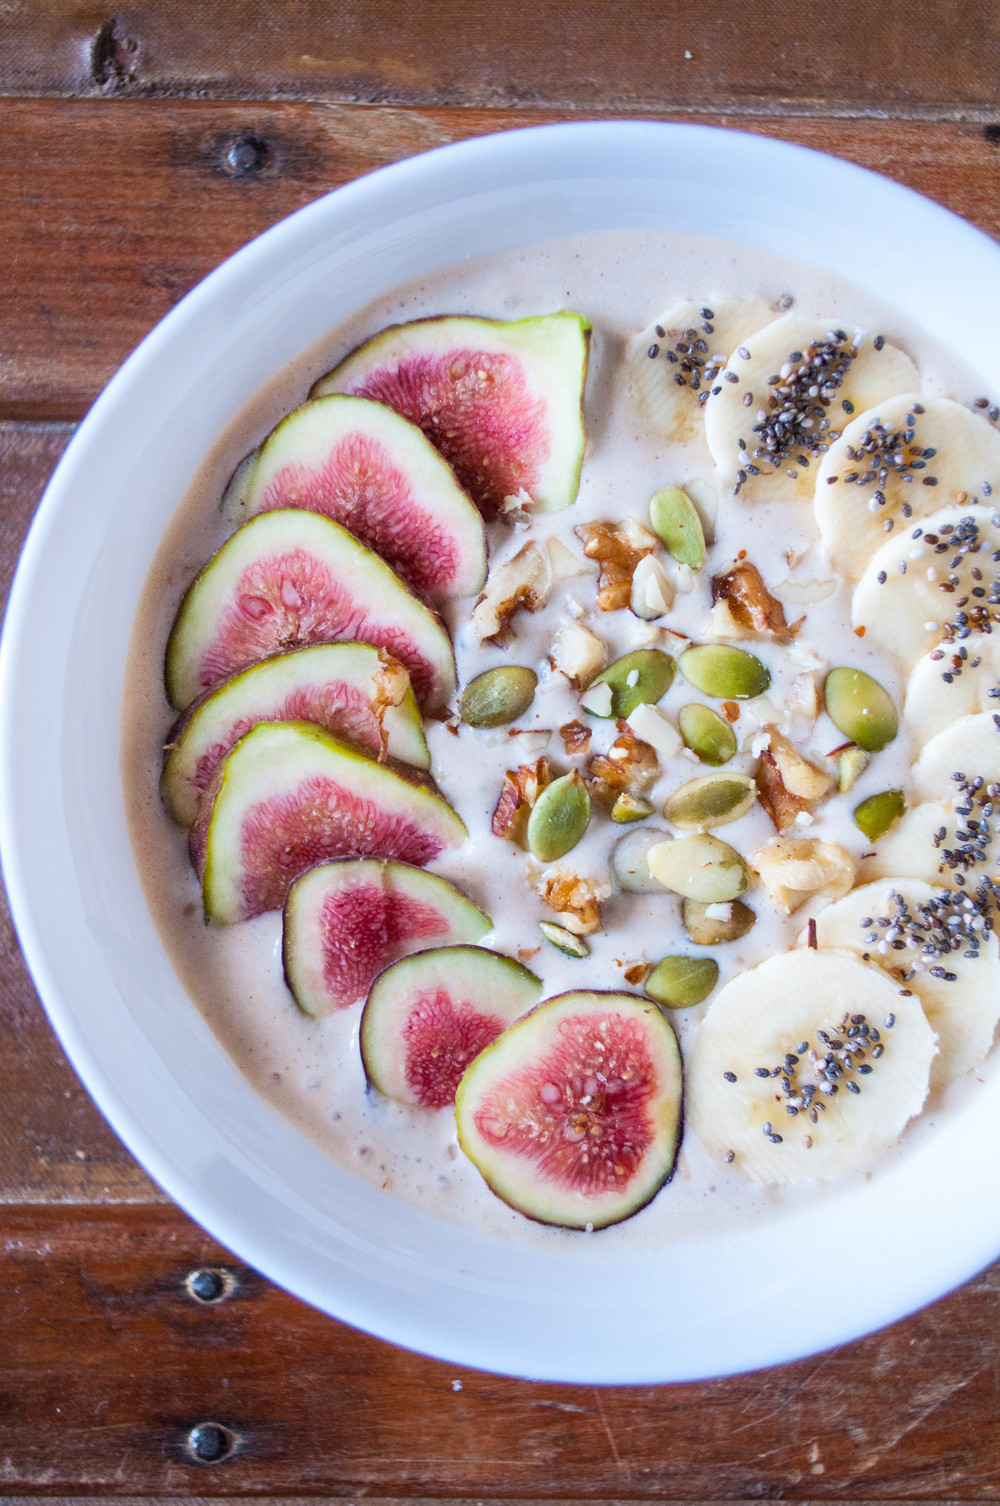 Holiday Detox: Banana, Fig & Chia Smoothie Bowl